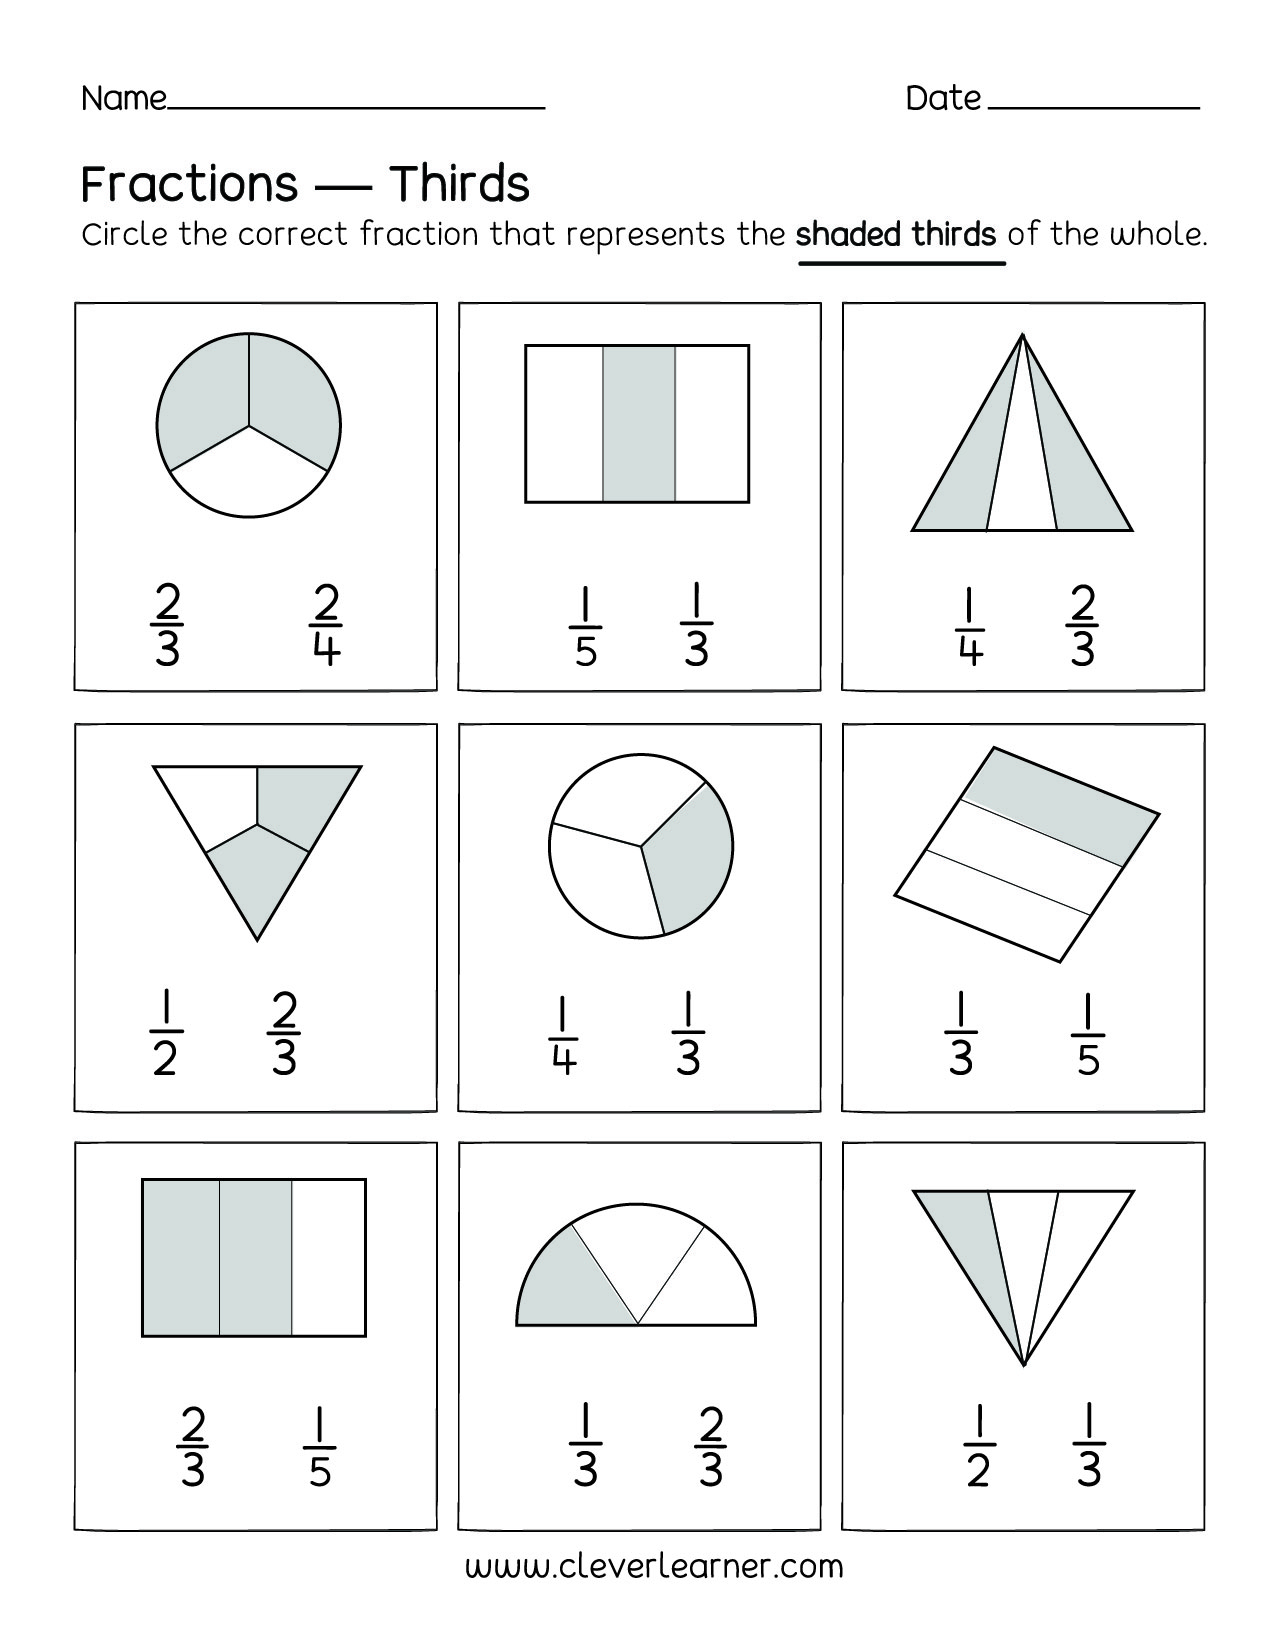 Fun Activity On Fractions Thirds Worksheets For Children